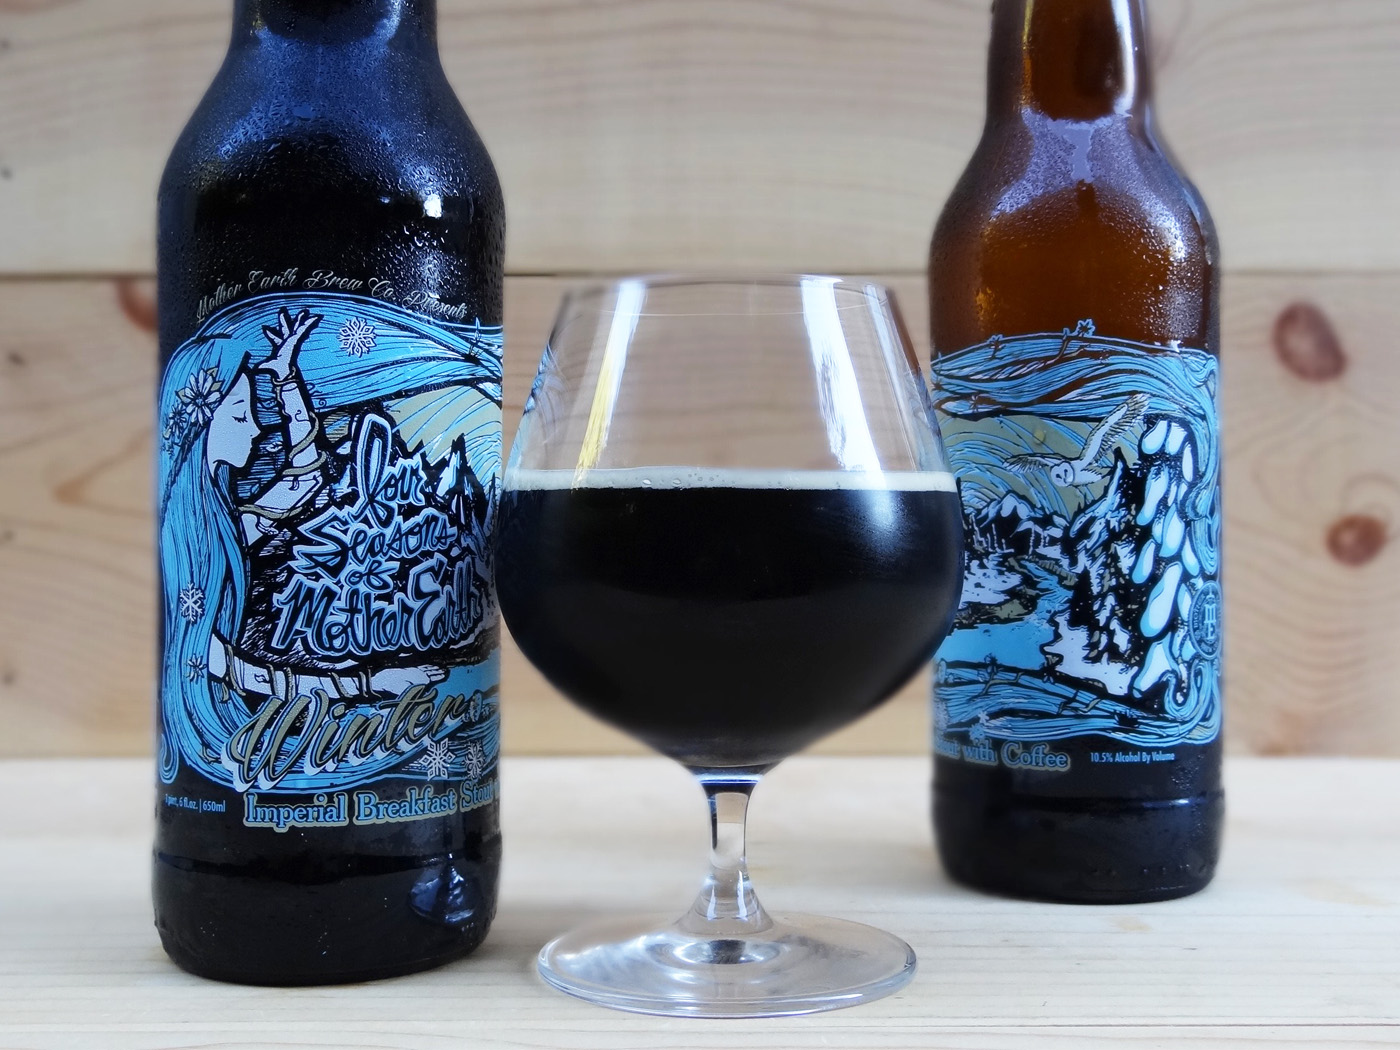 Four Seasons of Mother Earth Winter Breakfast Stout with Coffee